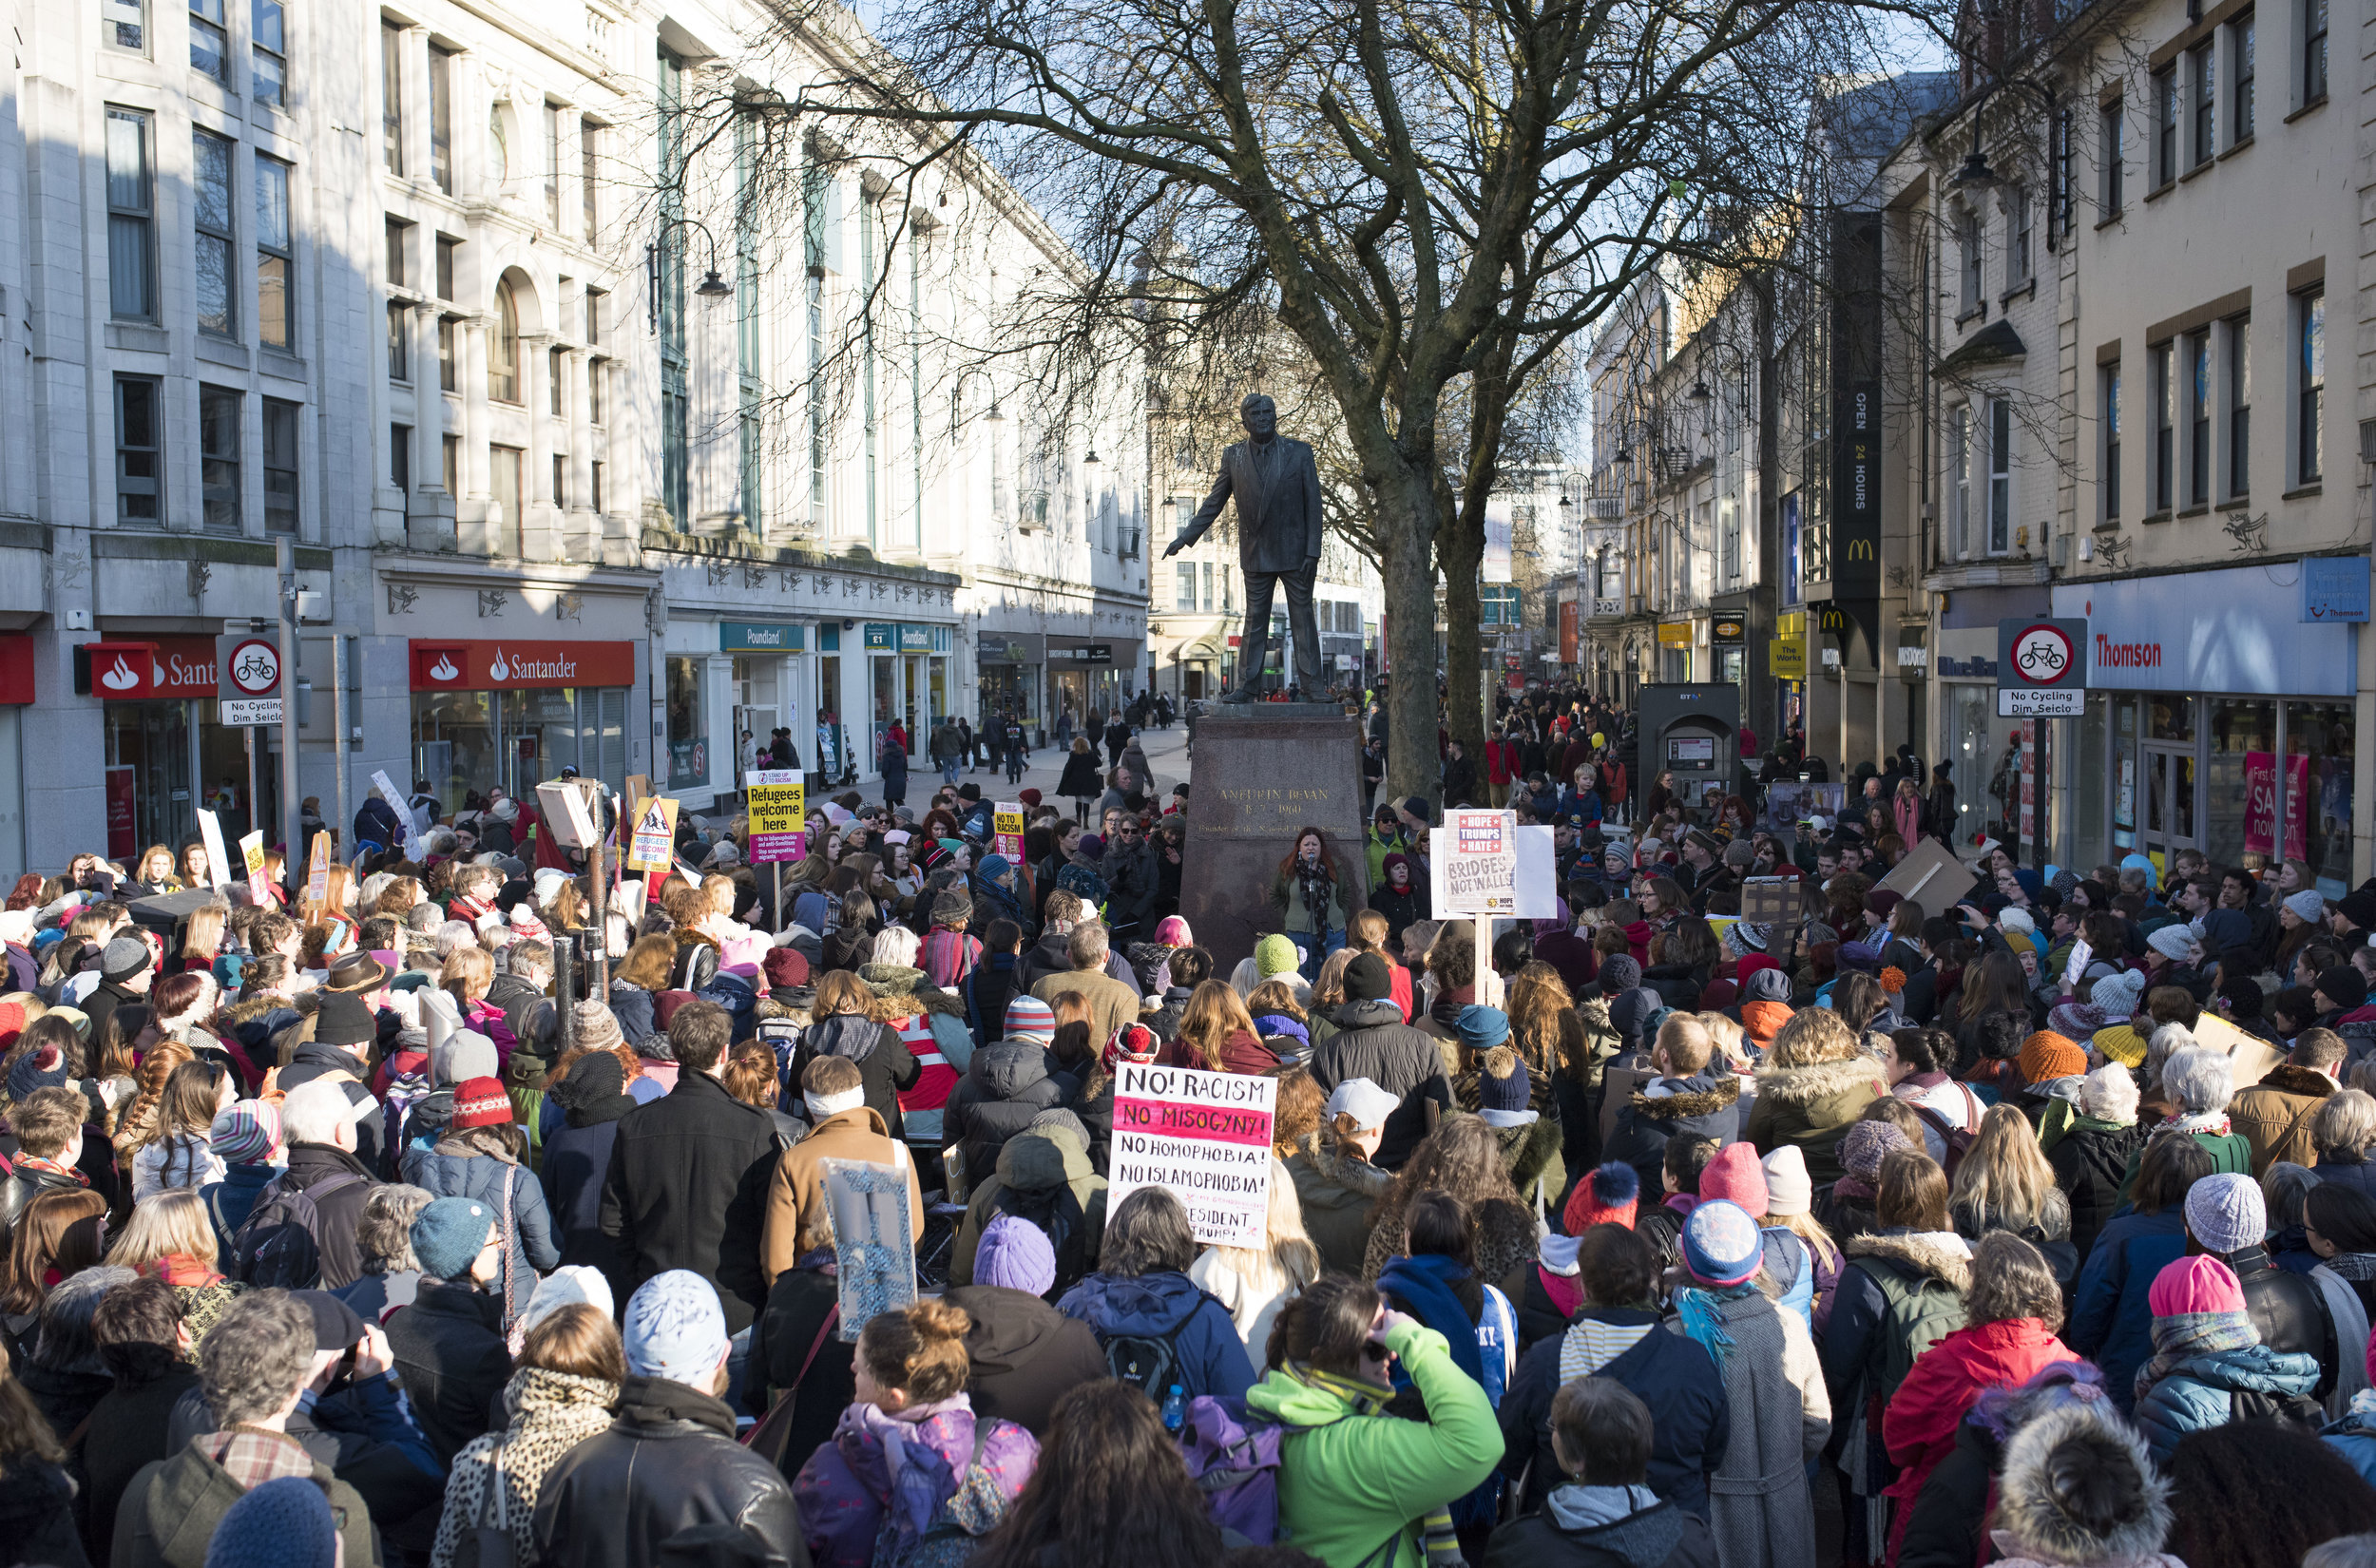 WNS_210117_Protests_01.JPG